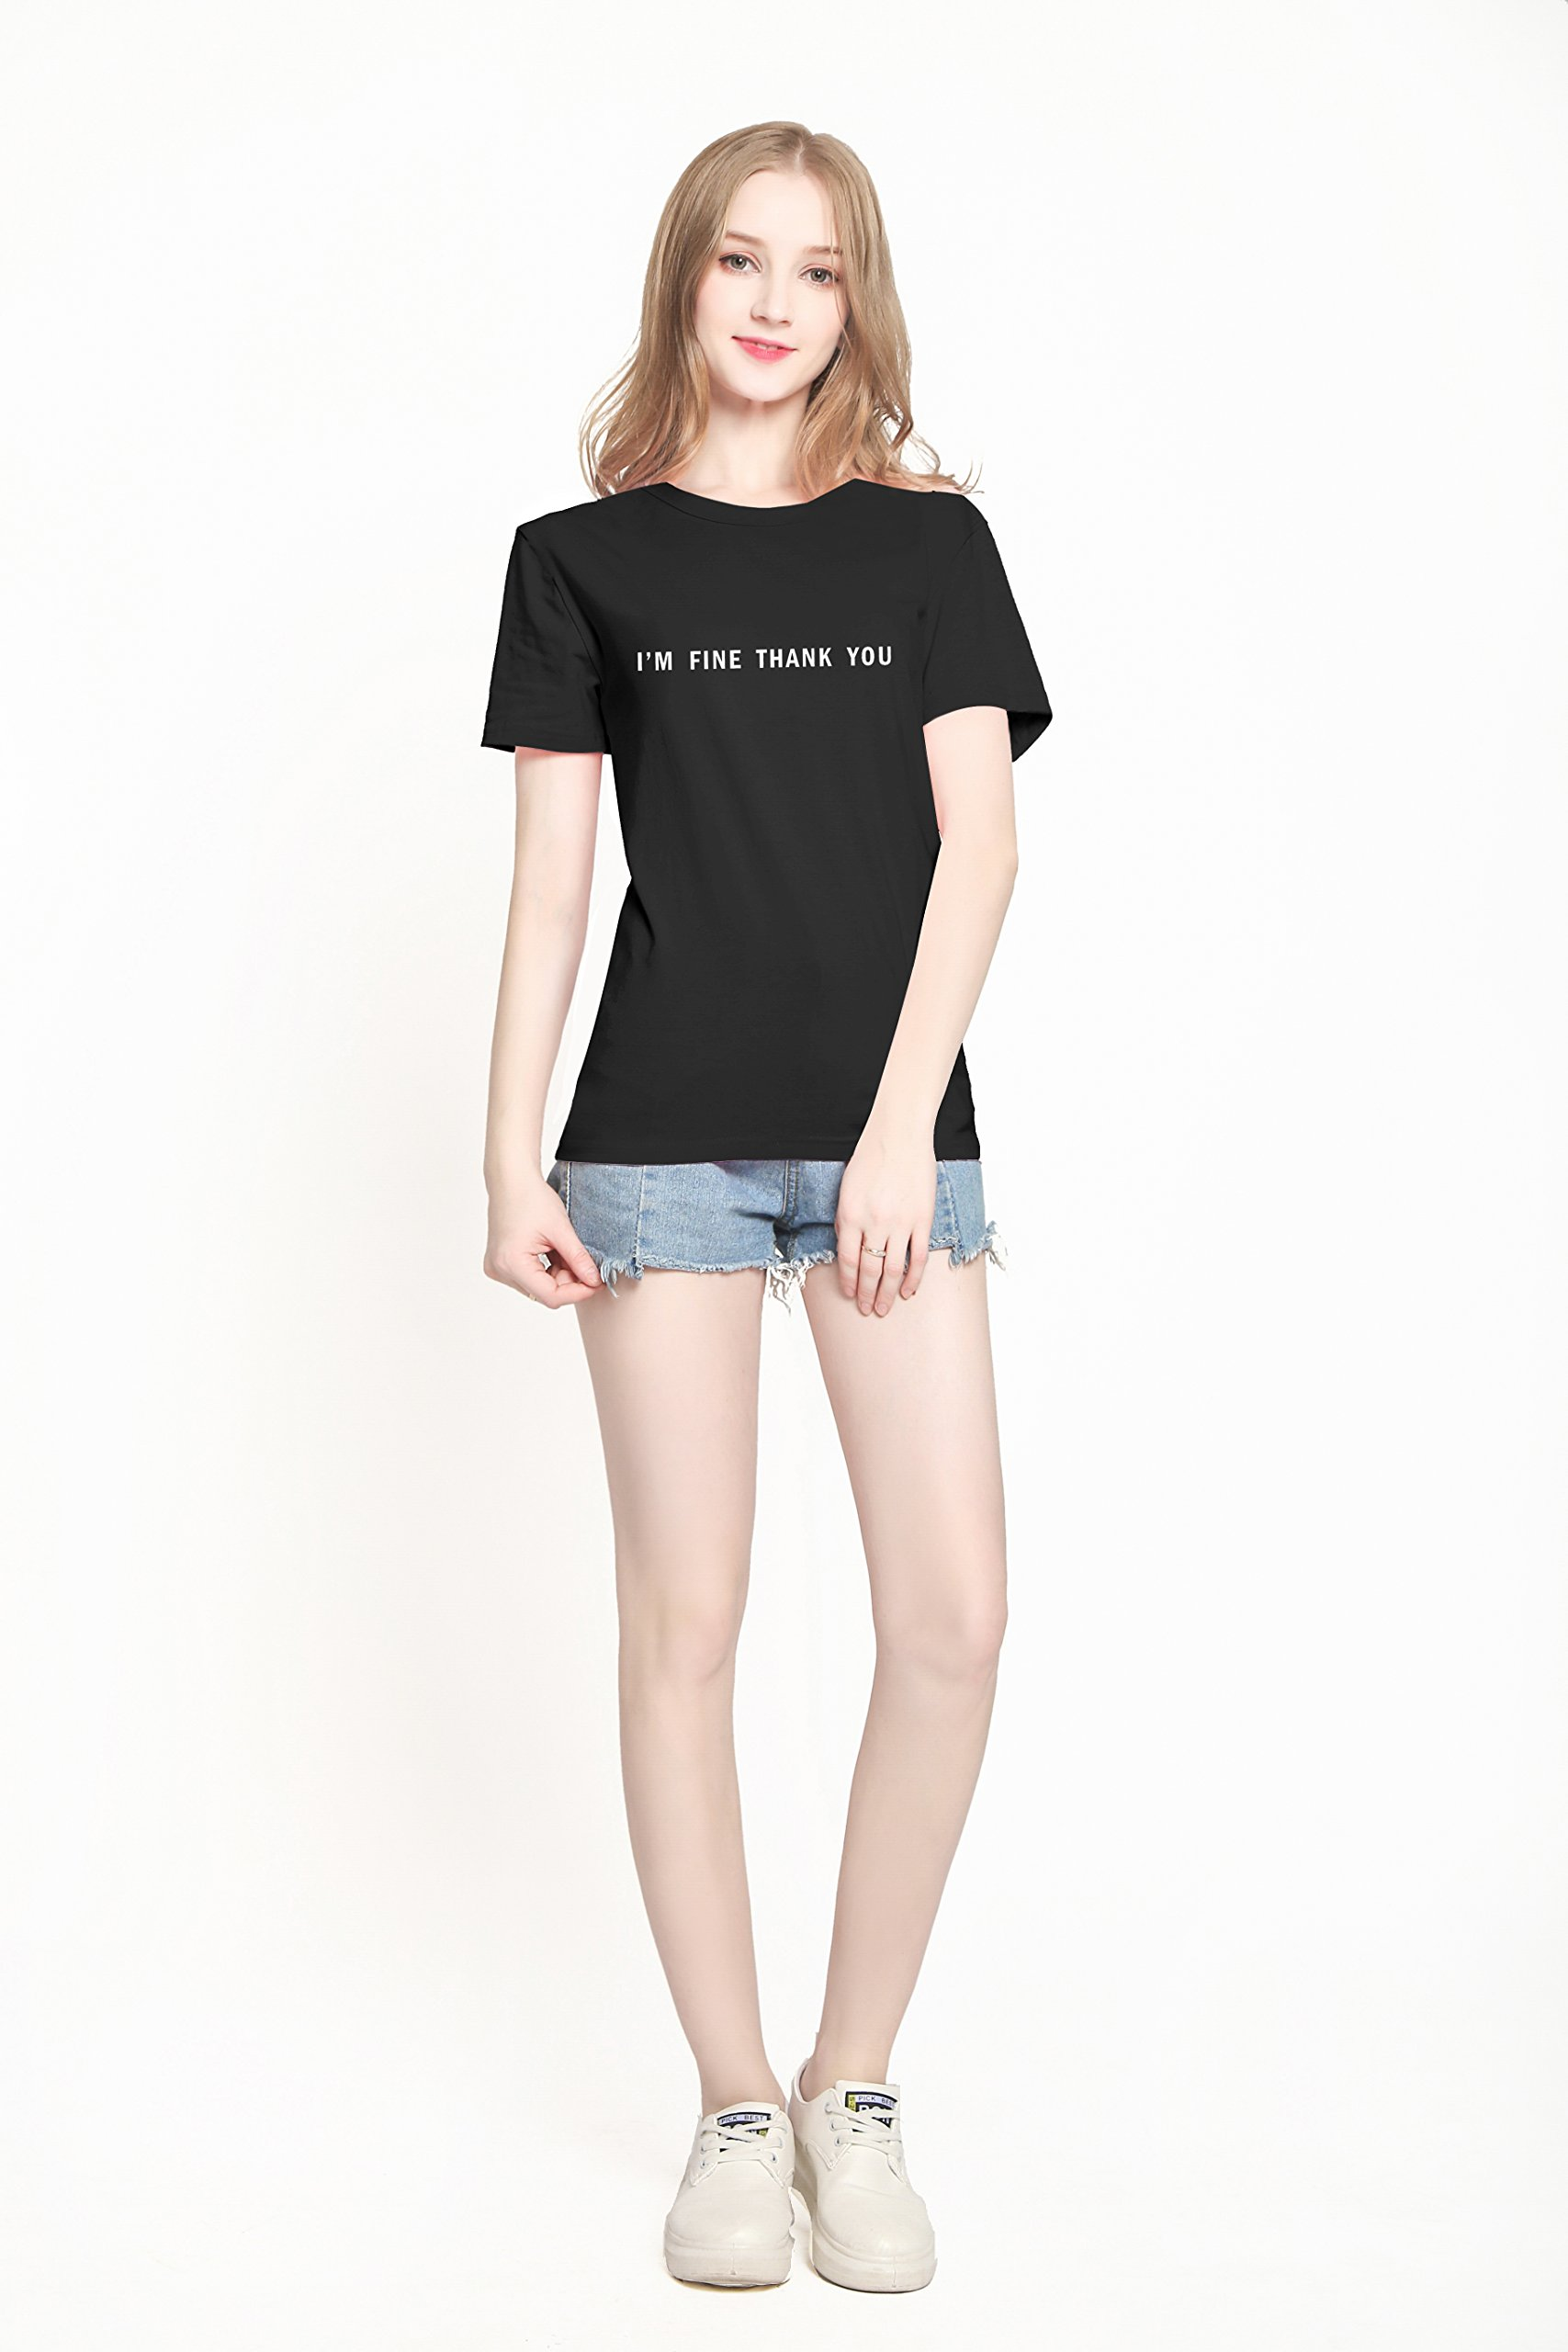 PINJIA Womens Cute Letter Printed Graphic Funny Tshirts Top Tees(MX15)(M,Black I'm FINE) by PINJIA (Image #2)